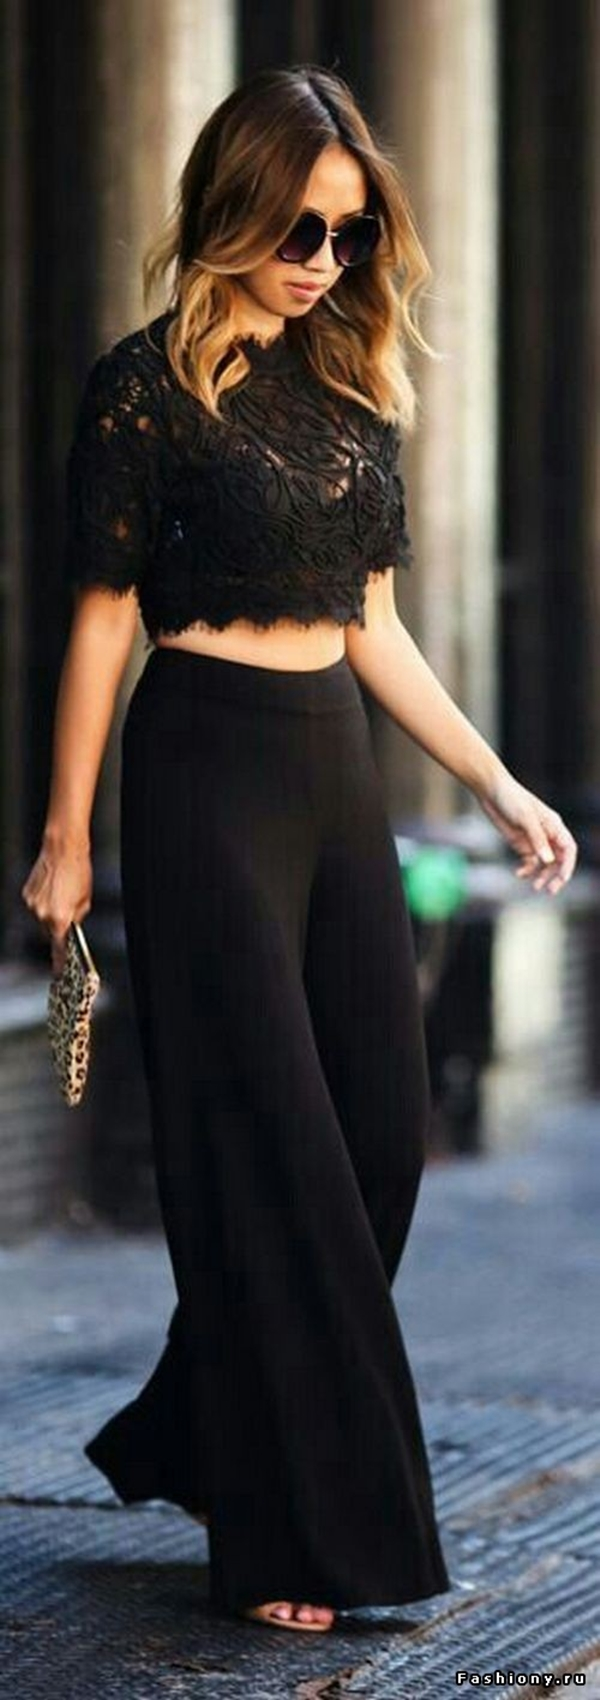 Indias-Most-Fashion-Trends-for-2018